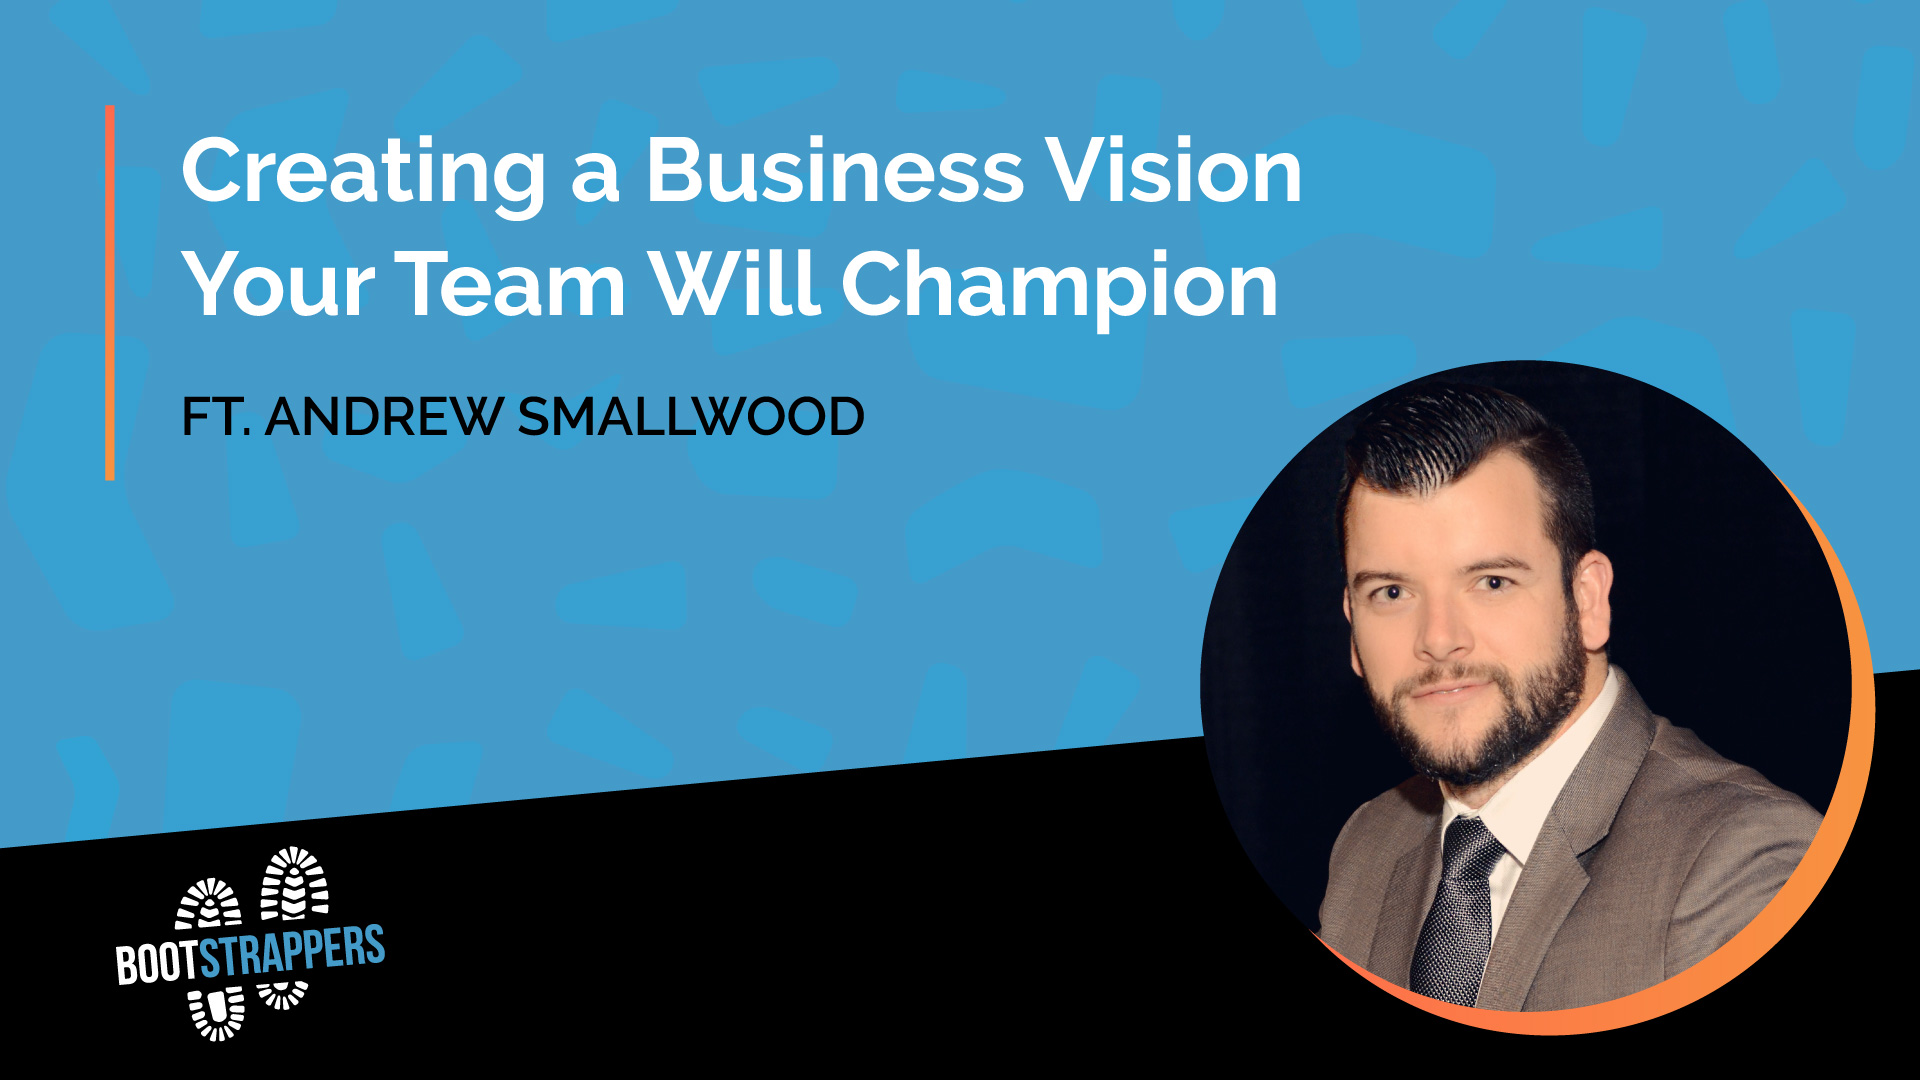 anequim-bootstrappers-creating-business-vision-your-team-will-champion